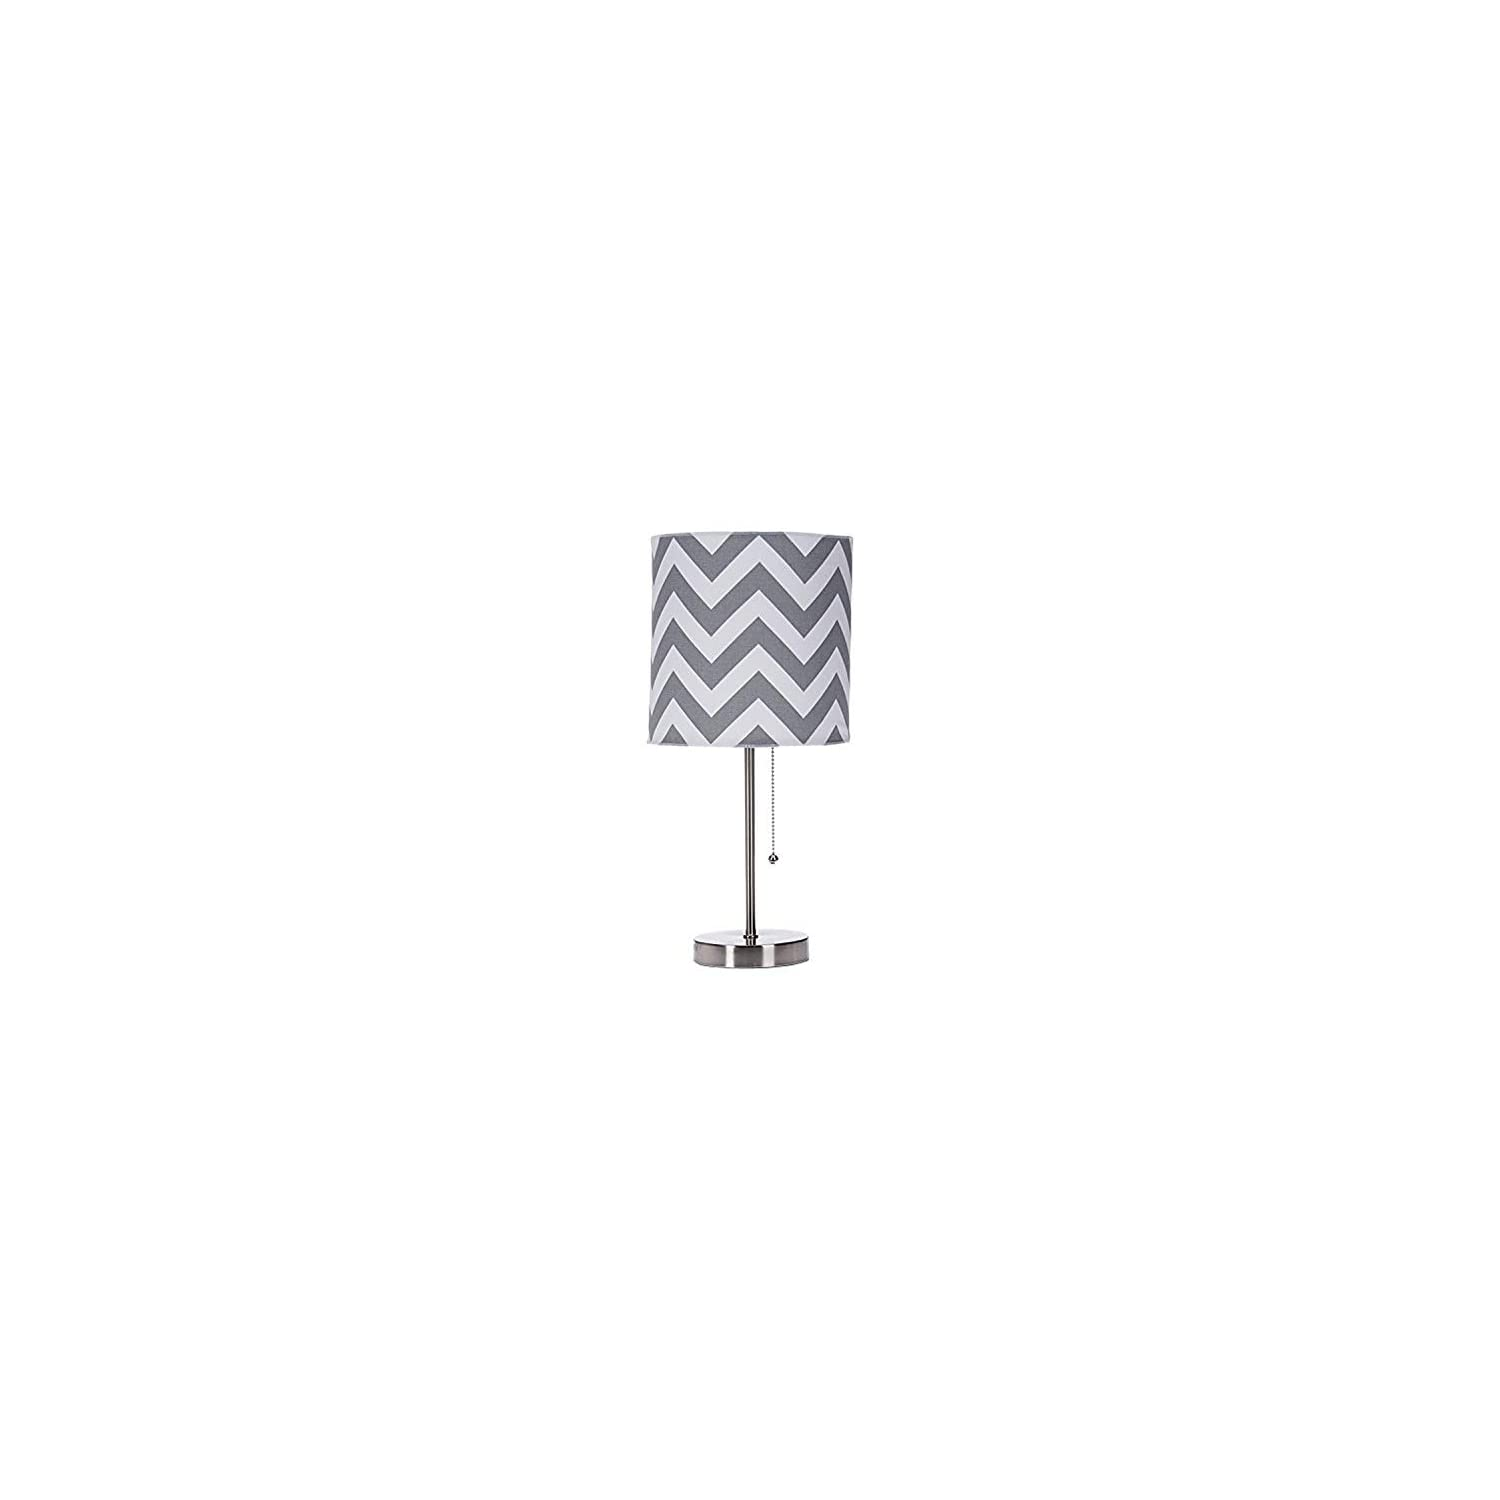 Sweet Potato Swizzle Yellow Mod lamp & Grey Chevron Shade